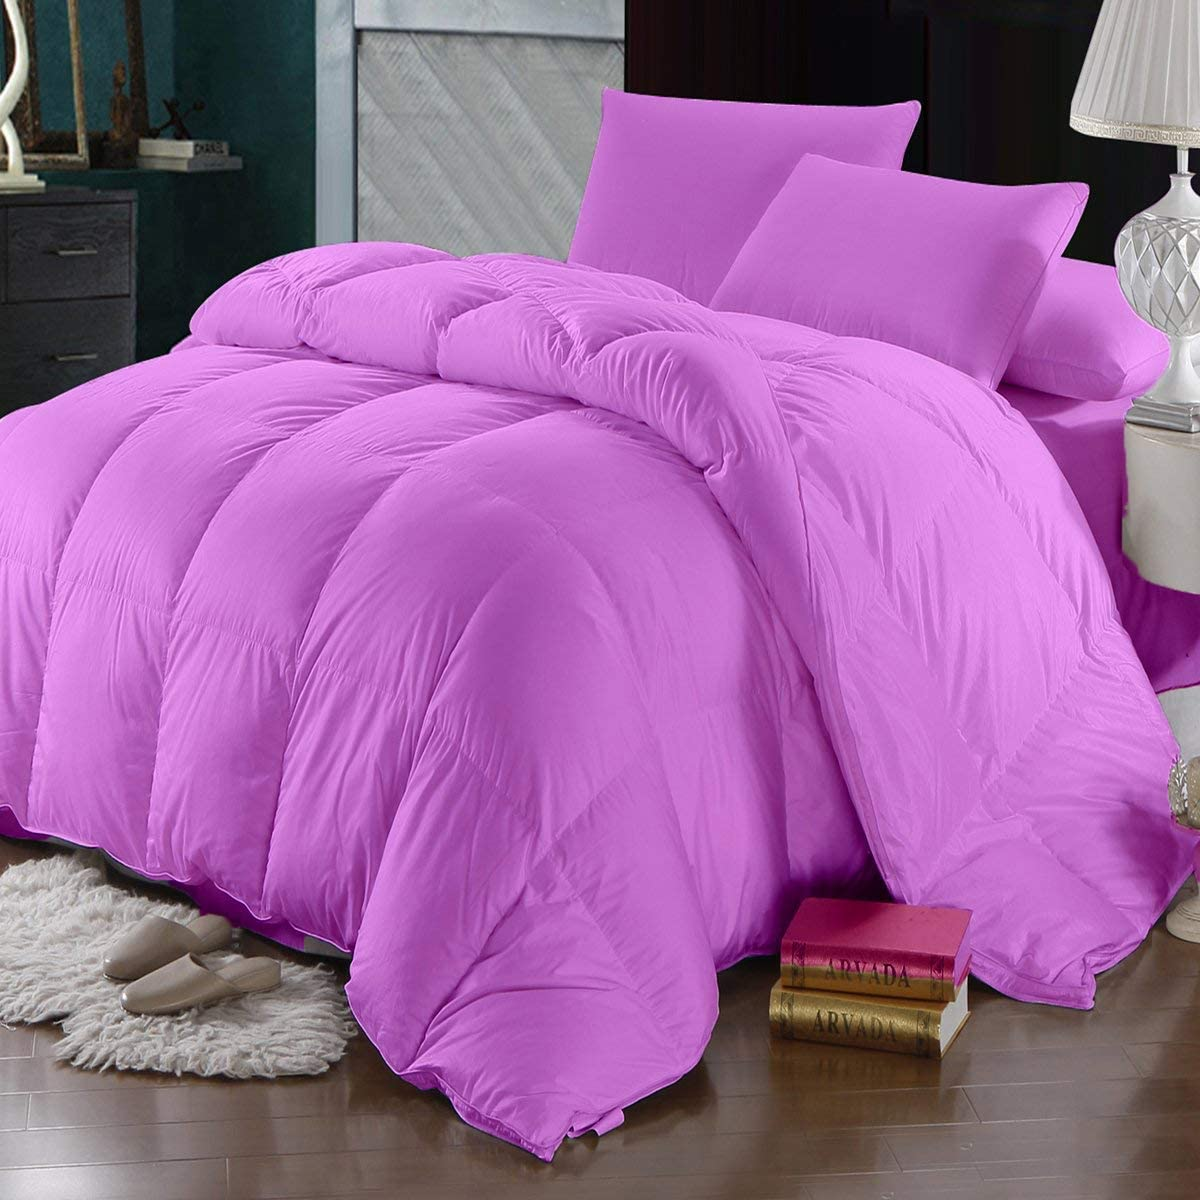 1 Piece Alternative Comforter Rapid rise with 2 50 Cotton 100% Cases Challenge the lowest price Pillow